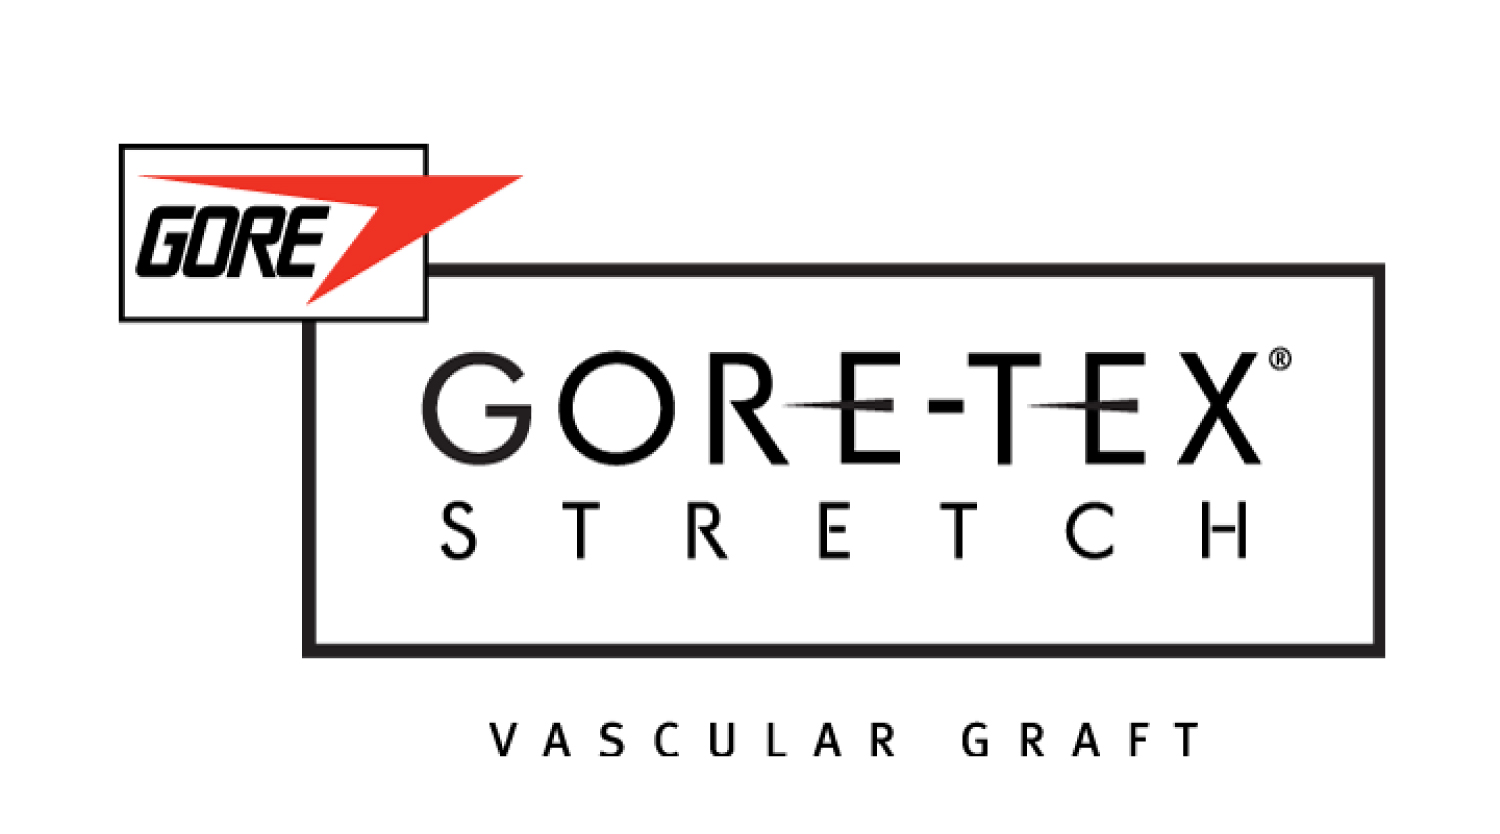 GORE-TEX STRETCH - VASCULAR GRAFT